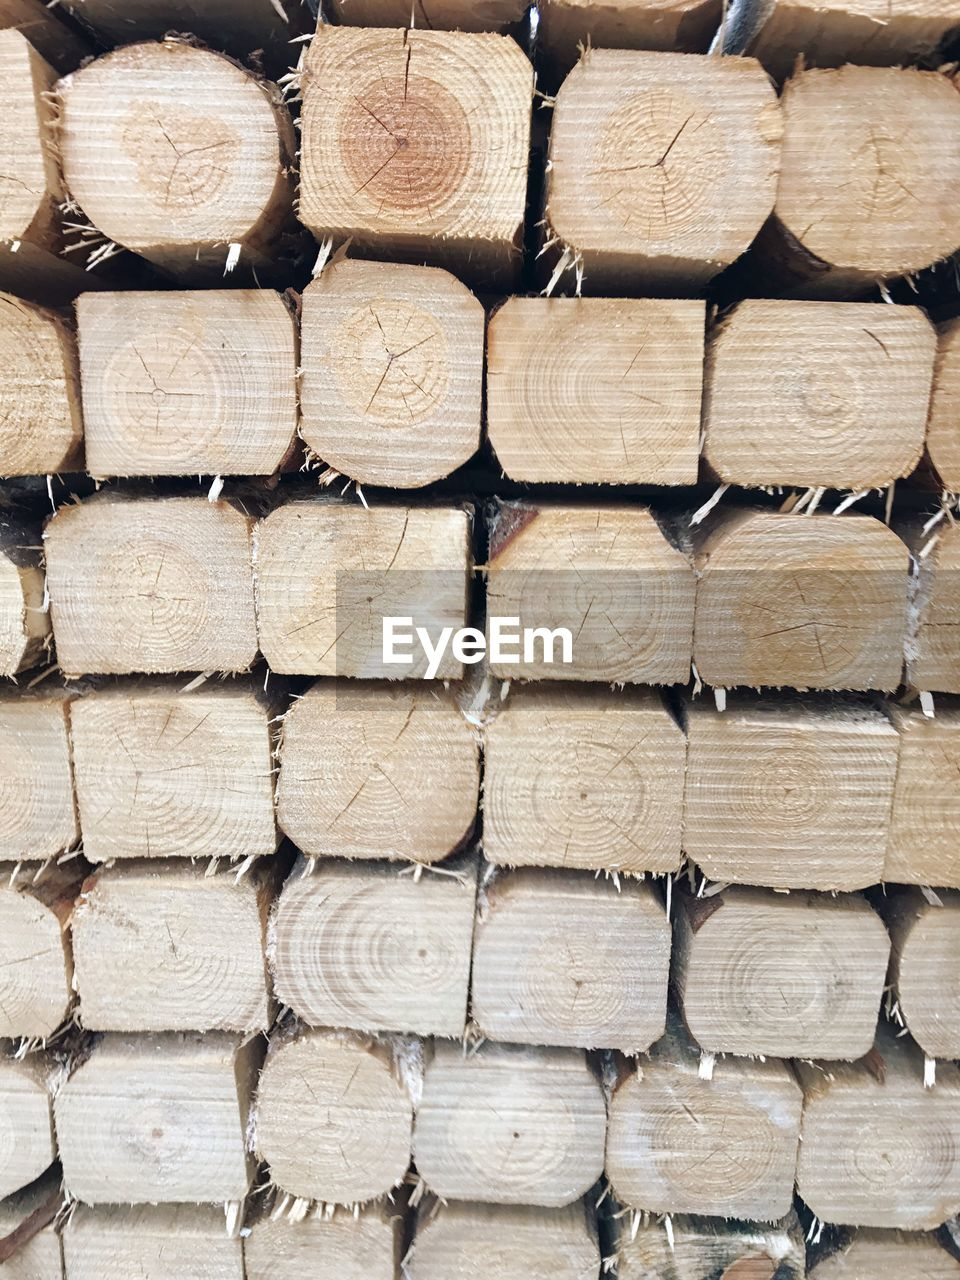 wood - material, full frame, large group of objects, backgrounds, stack, timber, abundance, pattern, log, wood, arrangement, firewood, forest, lumber industry, deforestation, tree, no people, brown, textured, woodpile, order, outdoors, tree ring, wood grain